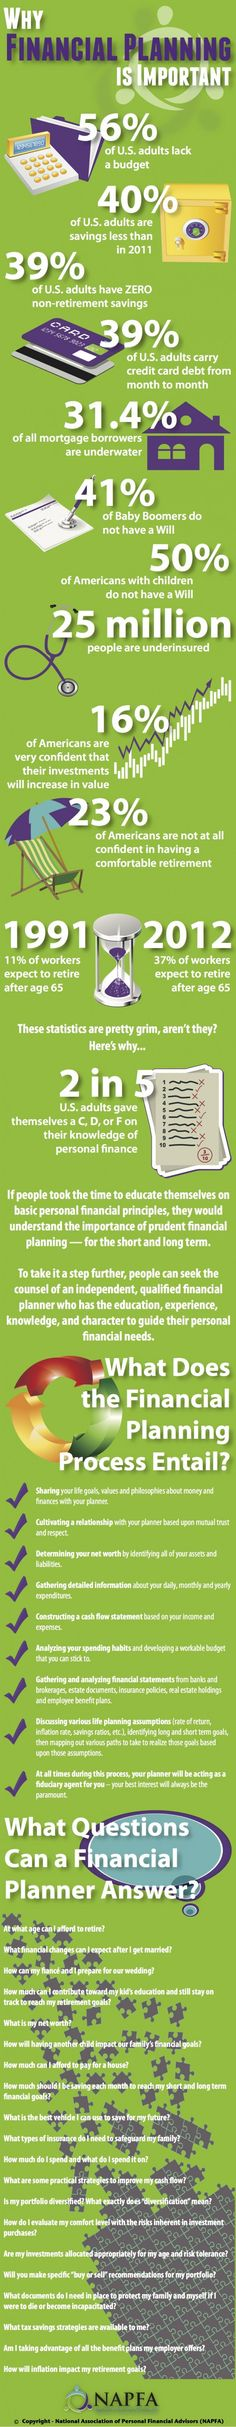 Why Financial Planning Is Important!!! Contact me to be your guide to financial independence at lpride@primerica.com.